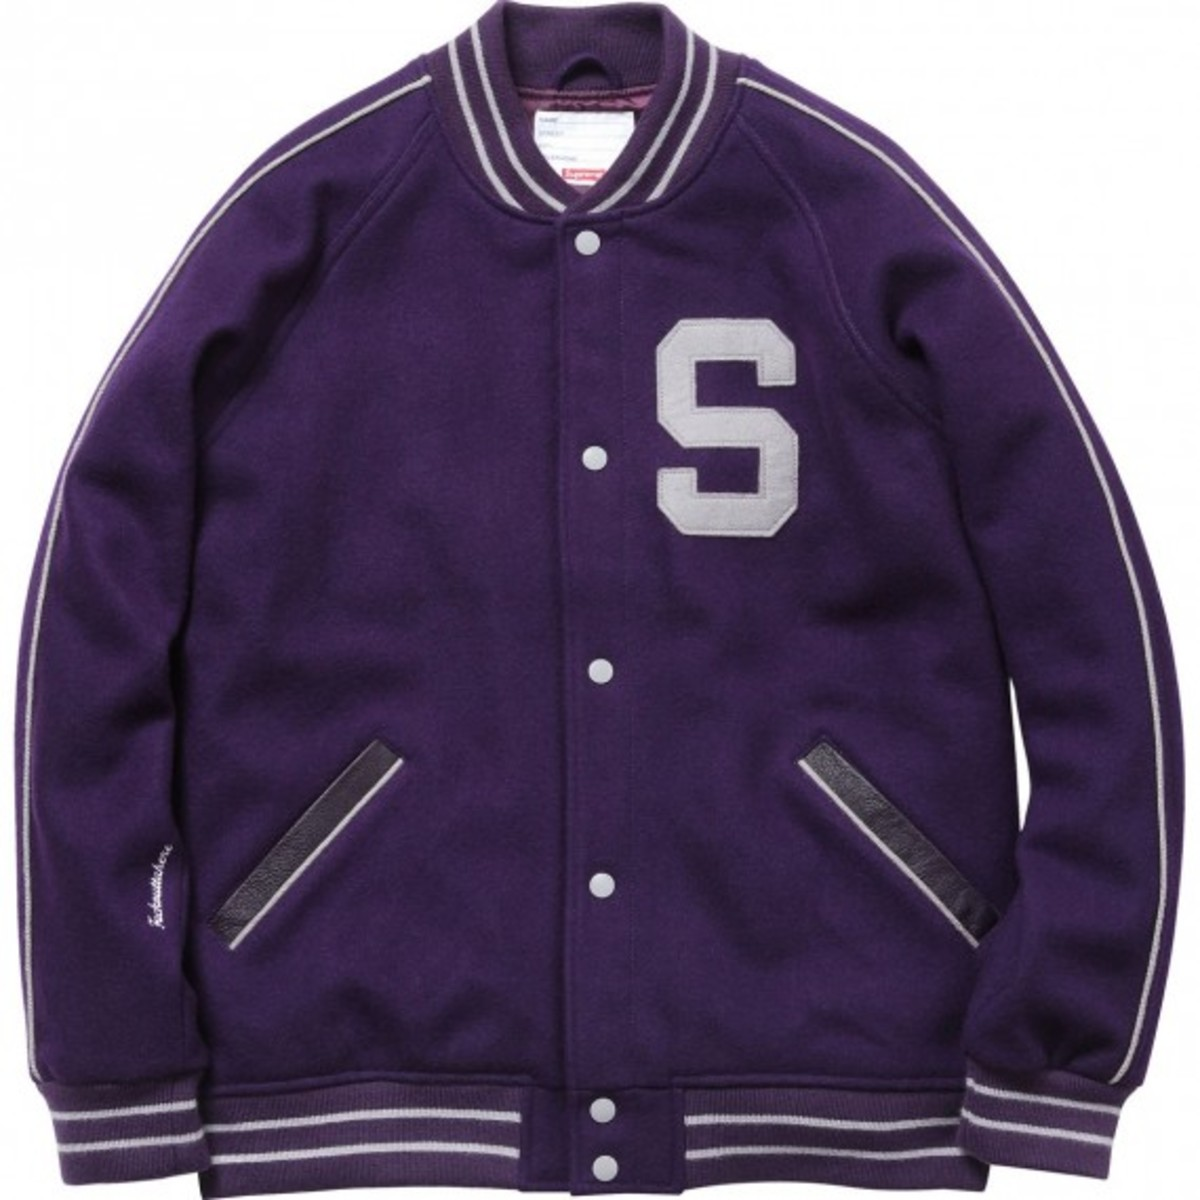 supreme-fall-winter-2011-collection-available-now-02